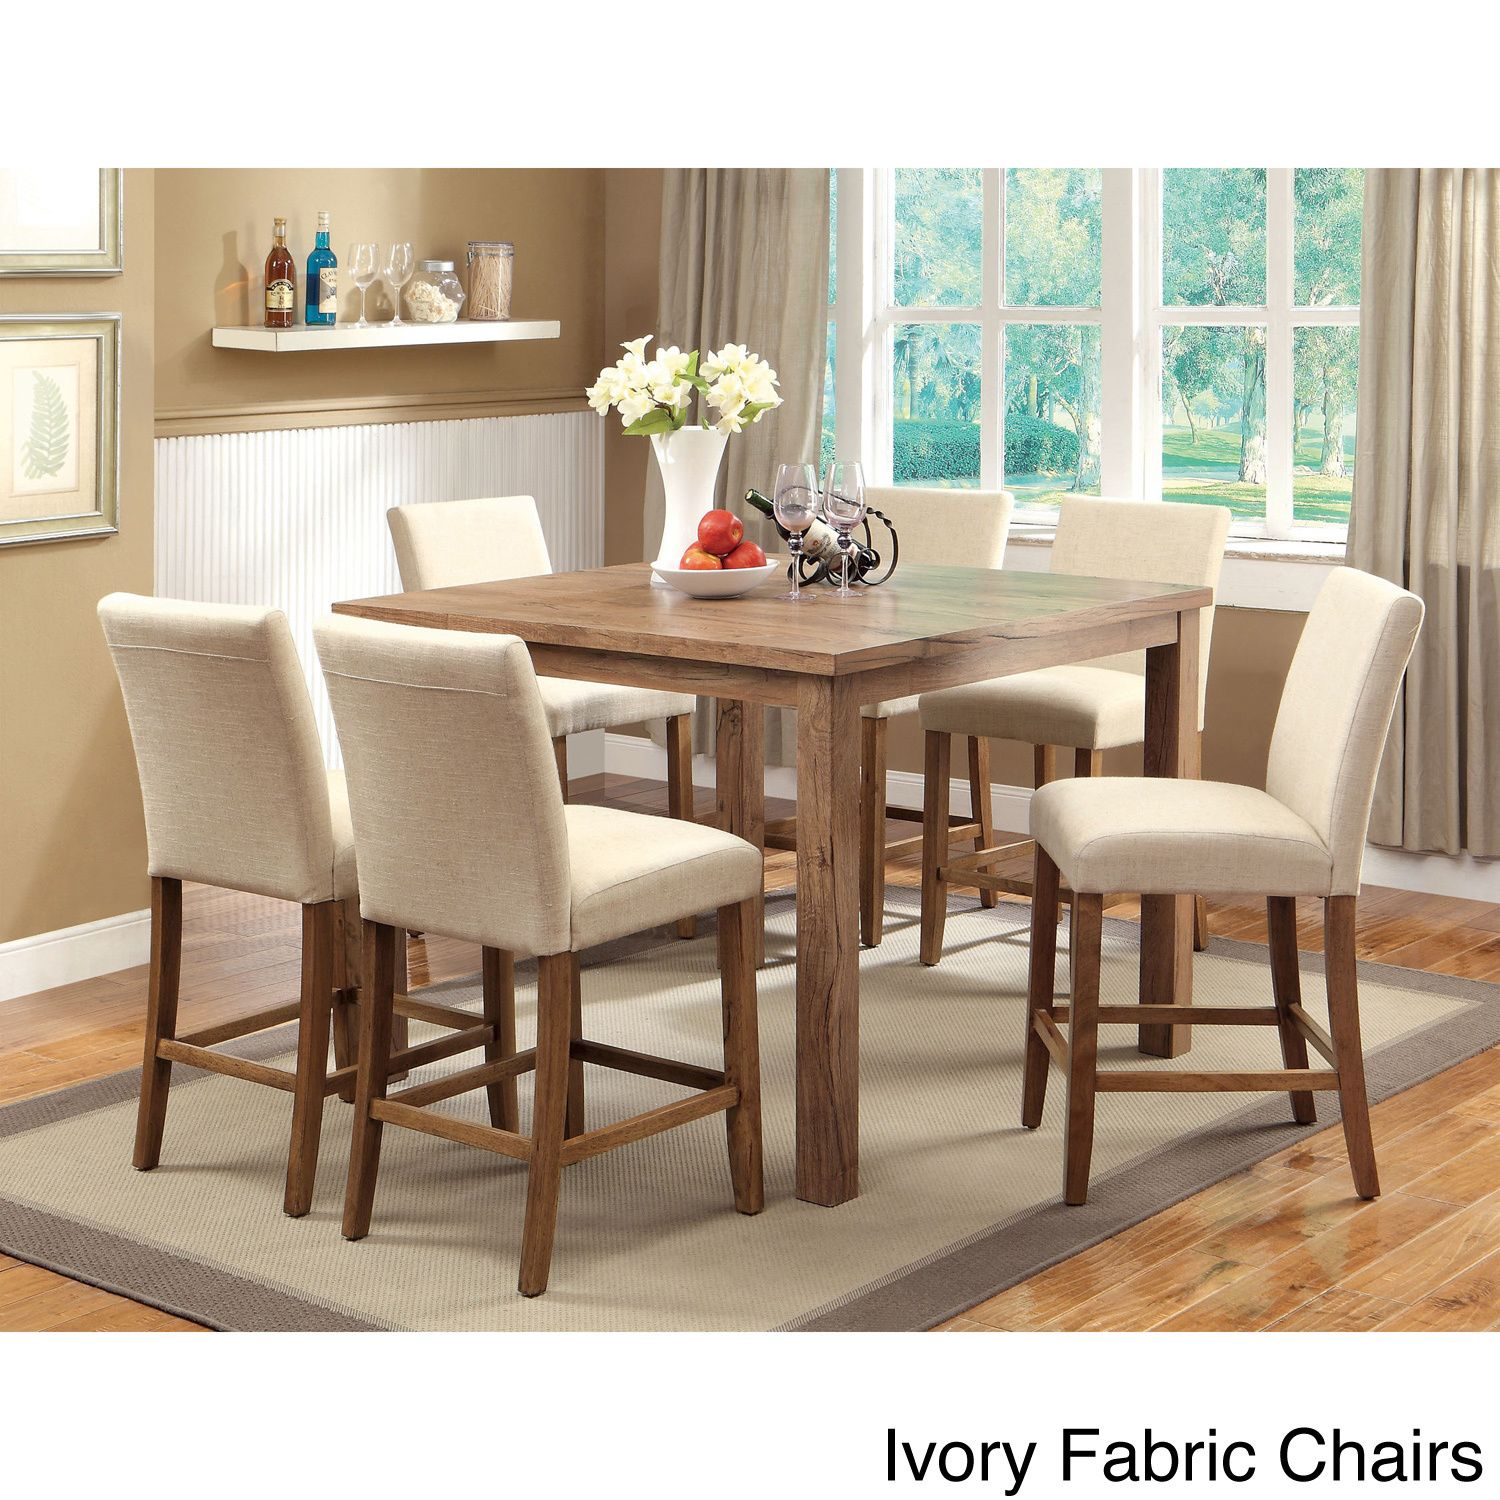 Enjoy Rustic Appeal With A Modern Twist. This Compact Dining Set Includes A  48